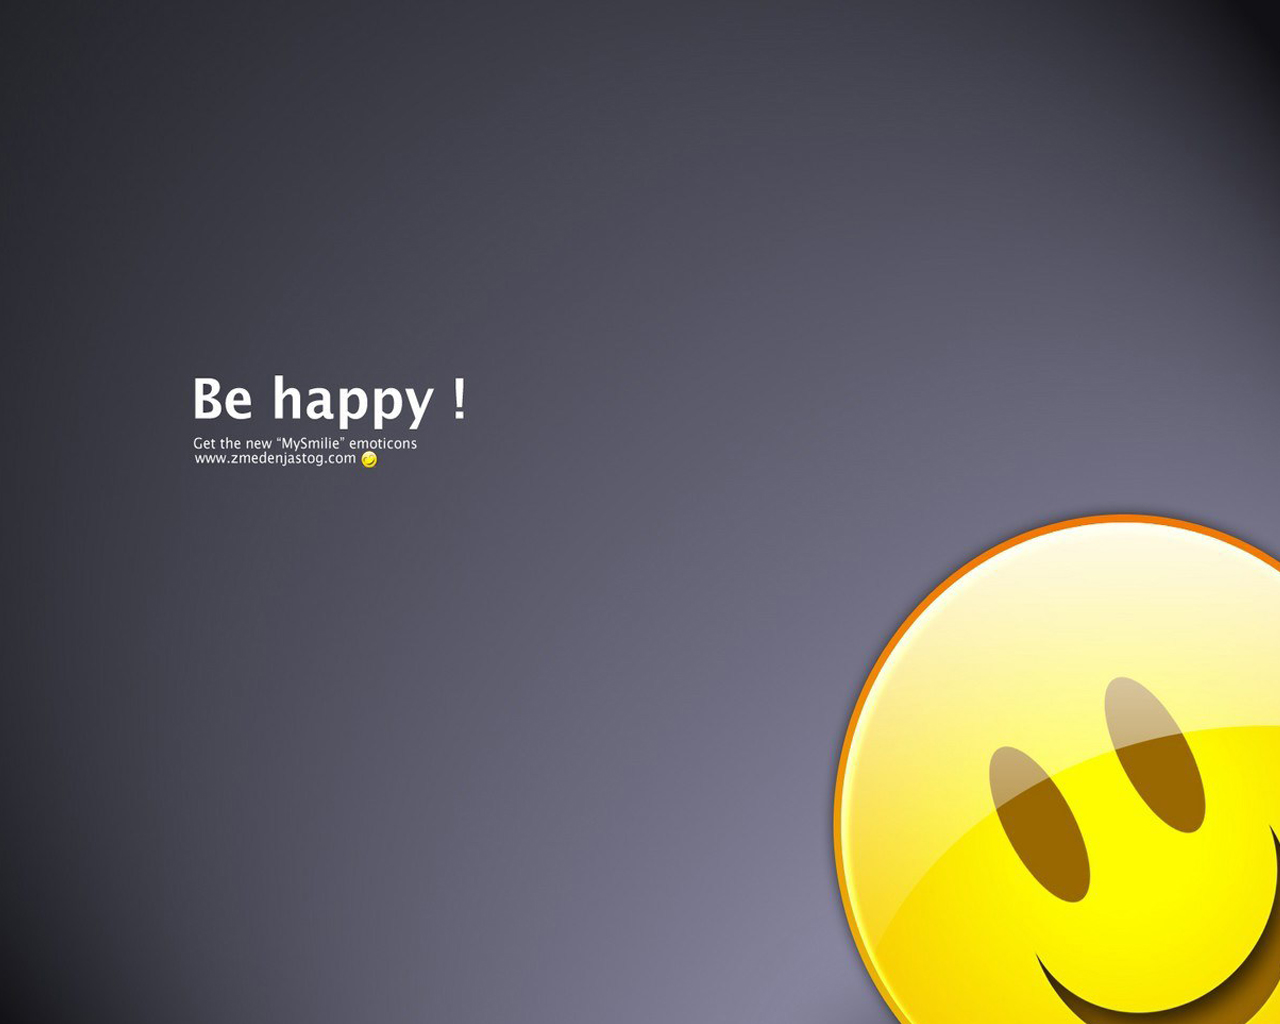 http://4.bp.blogspot.com/-XSa-84PC2YA/UDZDw84JbXI/AAAAAAAAAiE/qnDkVFI54ng/s1600/Be+Happy+1280X1024+Wallpaper+1.jpg